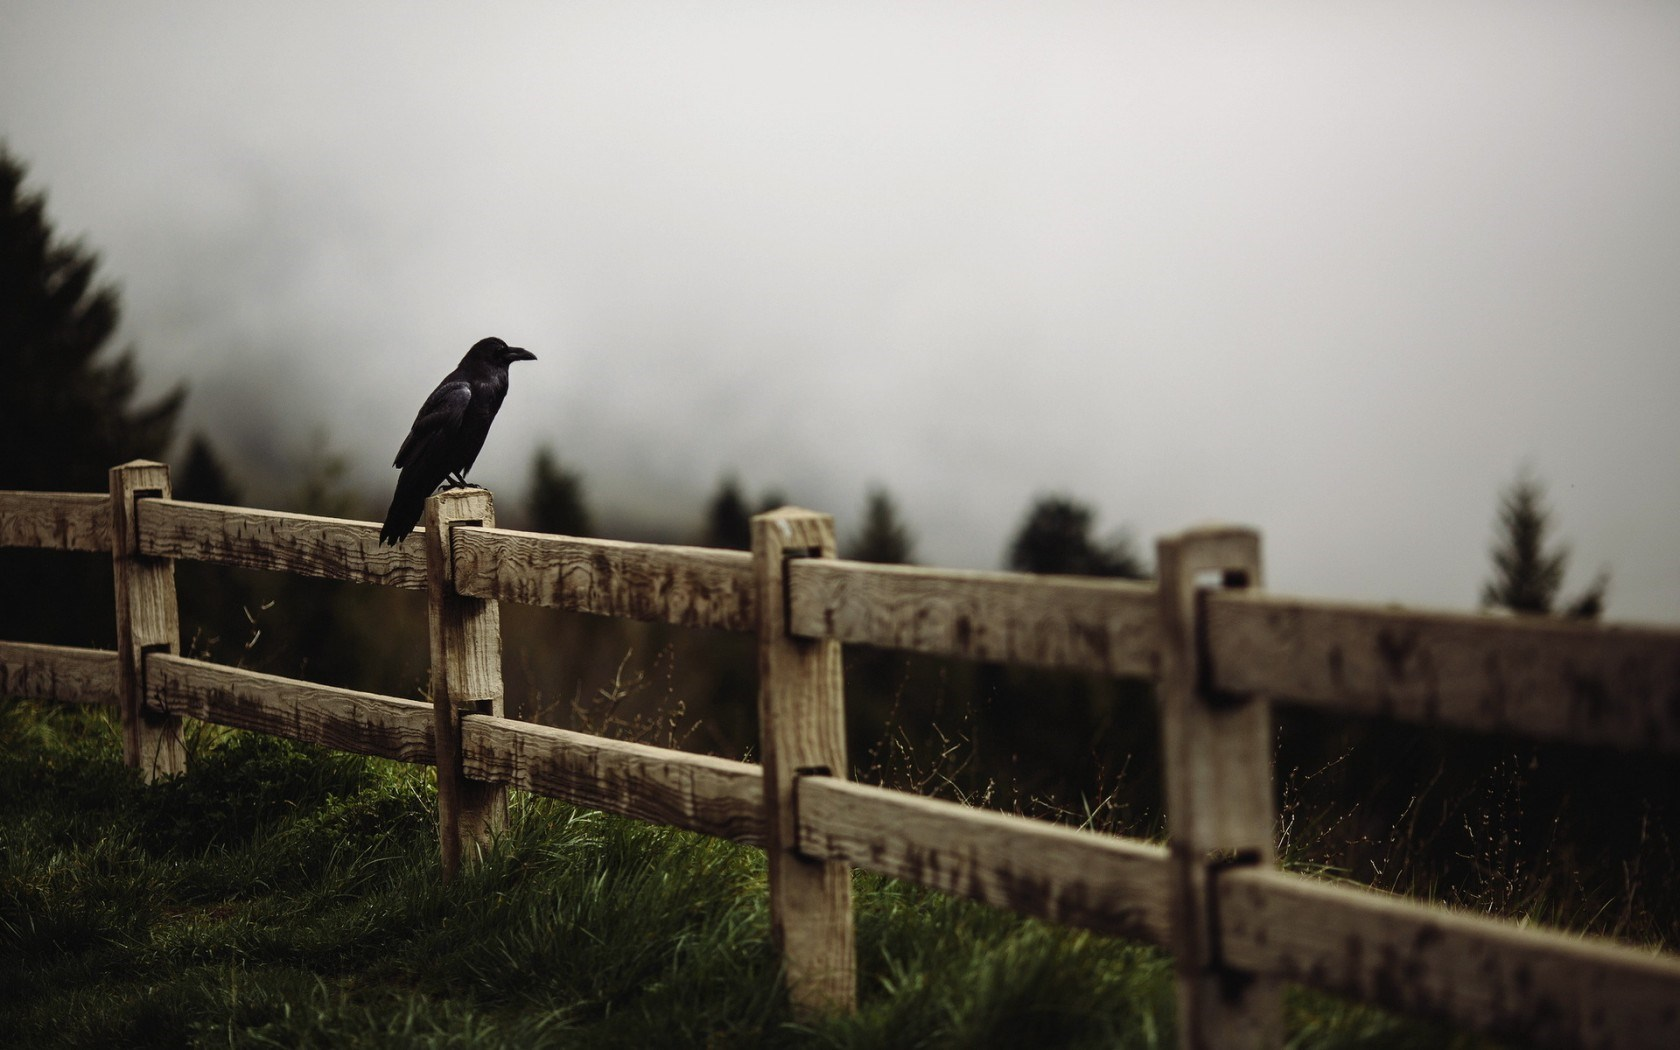 raven bird fence 2015 09 23 8 total views 8 1 views for 7 days 1 raven 1680x1050